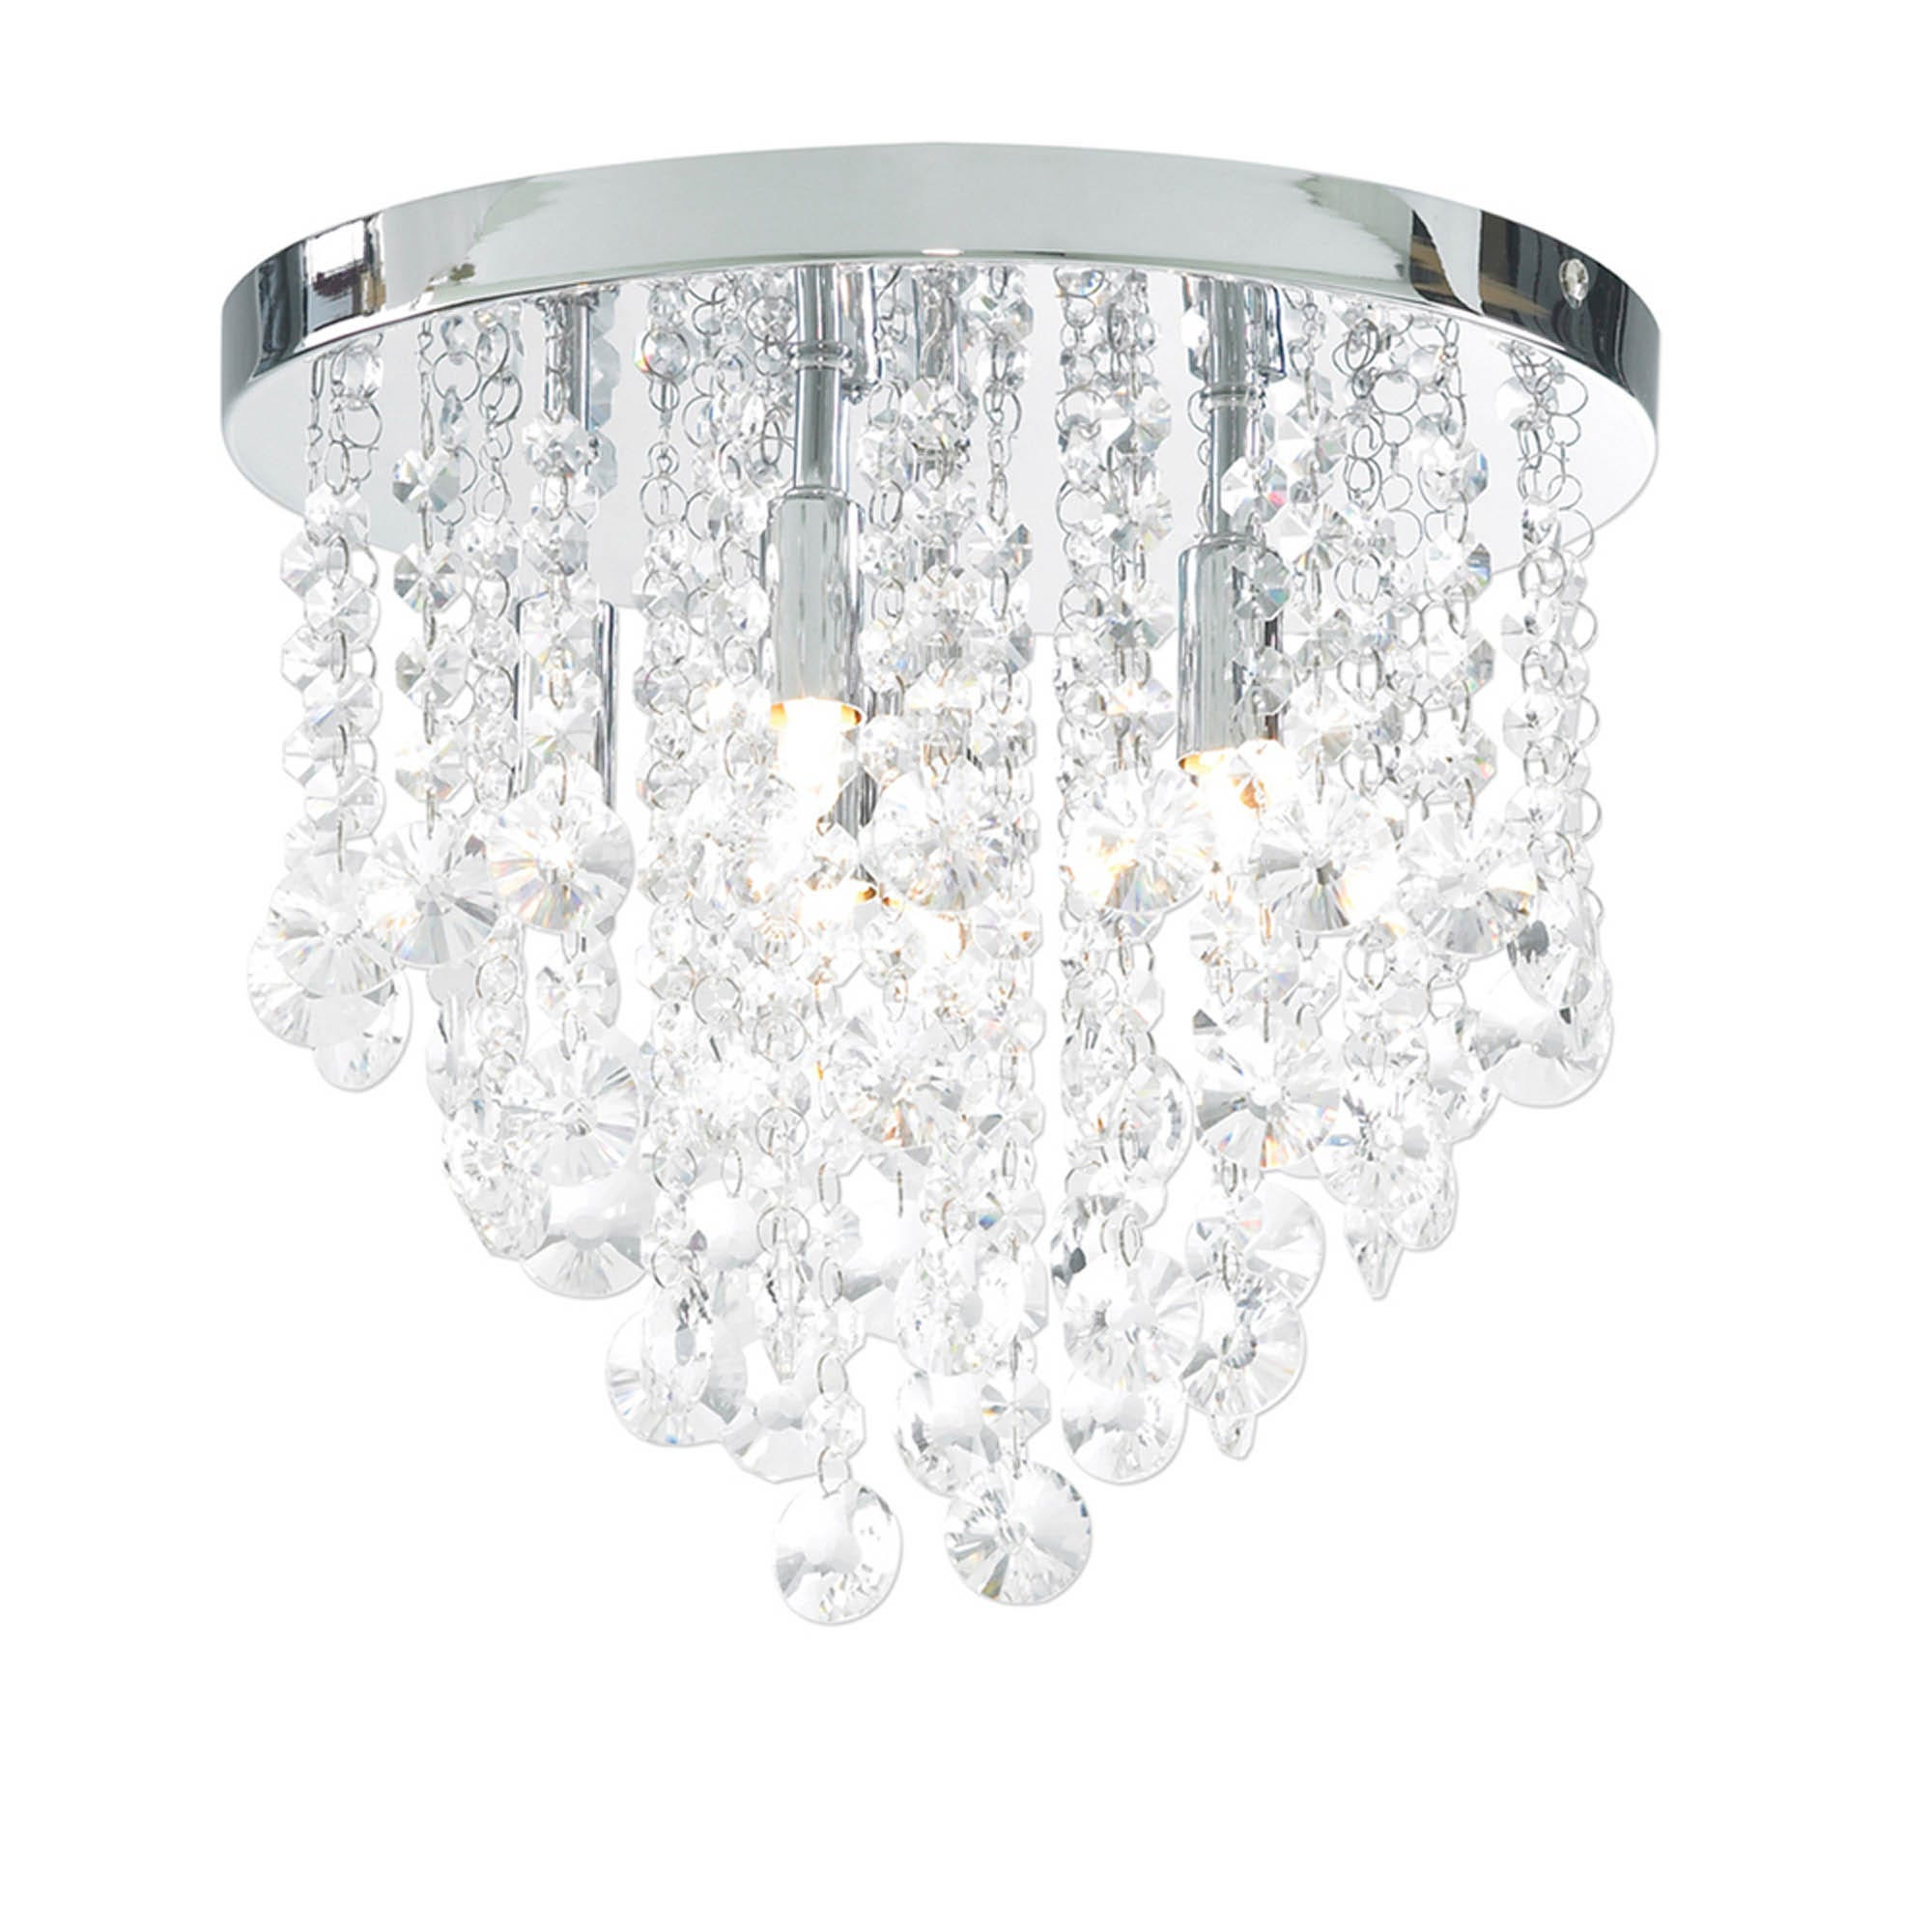 Image of Diego 6Lt Chrome Ceiling Light